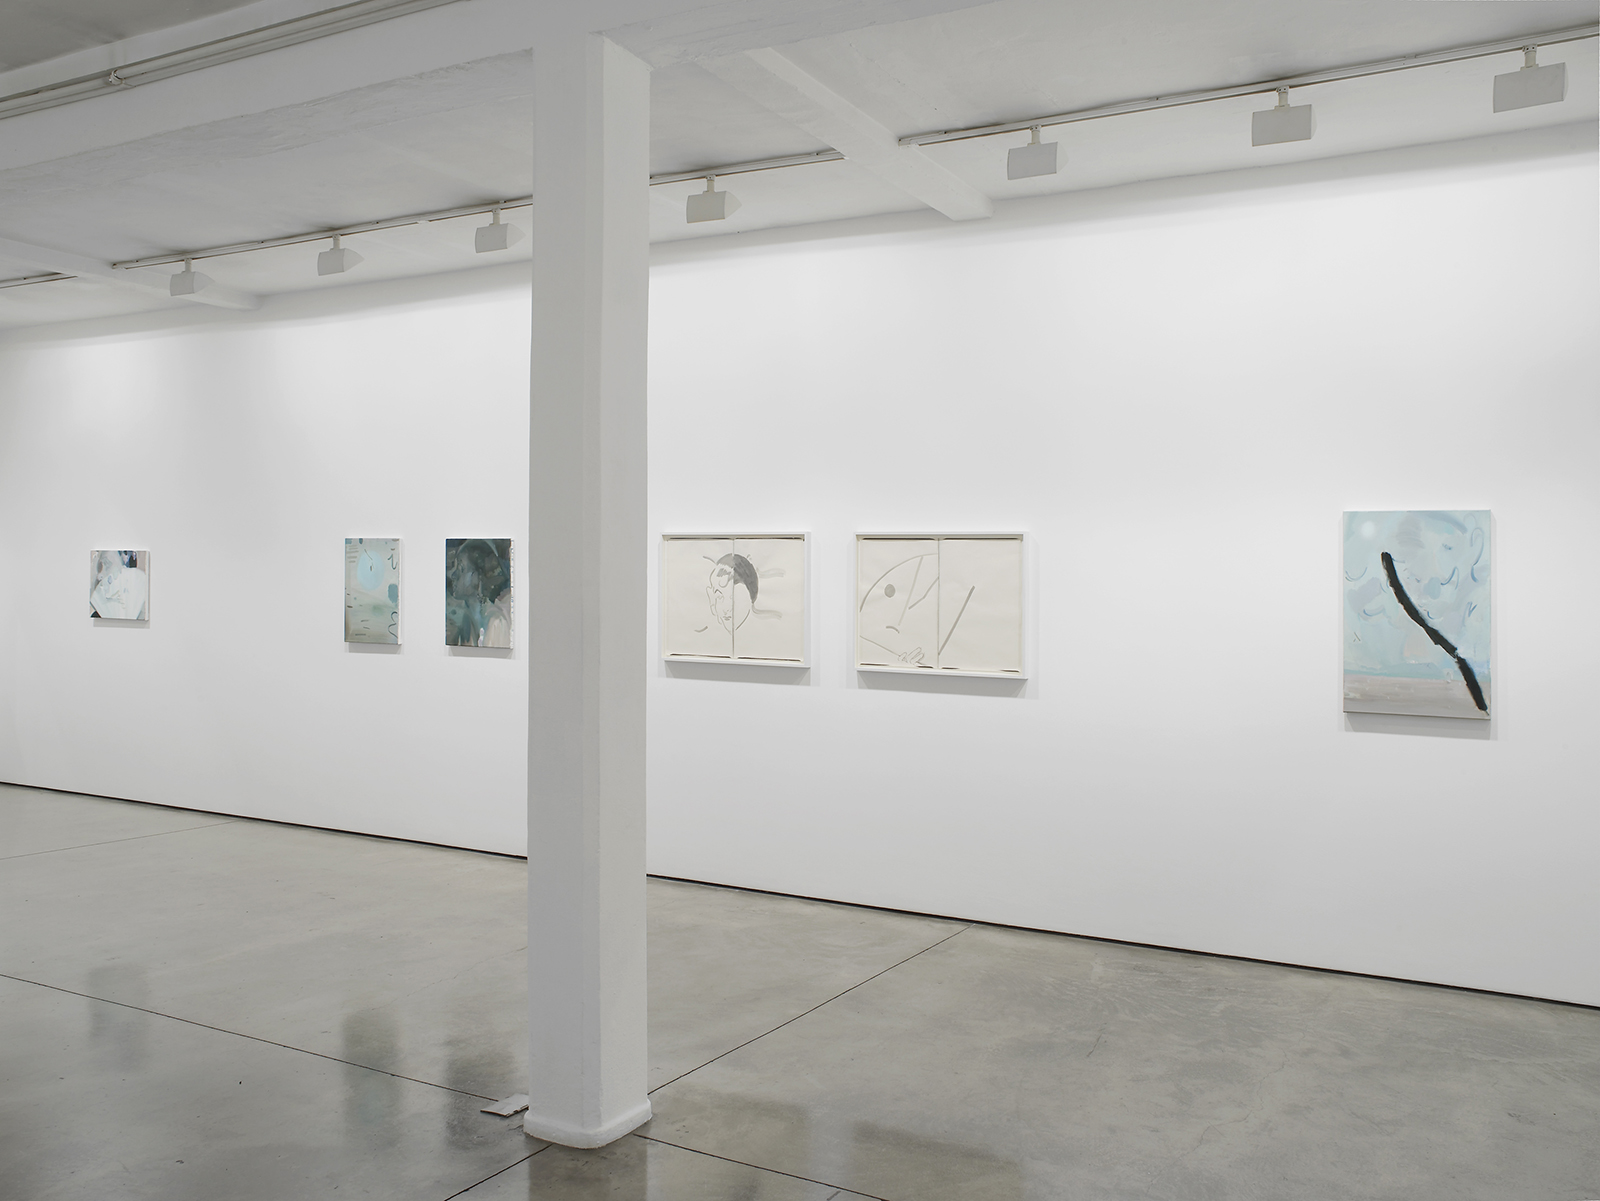 3 - Kaye Donachie at Maureen Paley - 4.02.2014